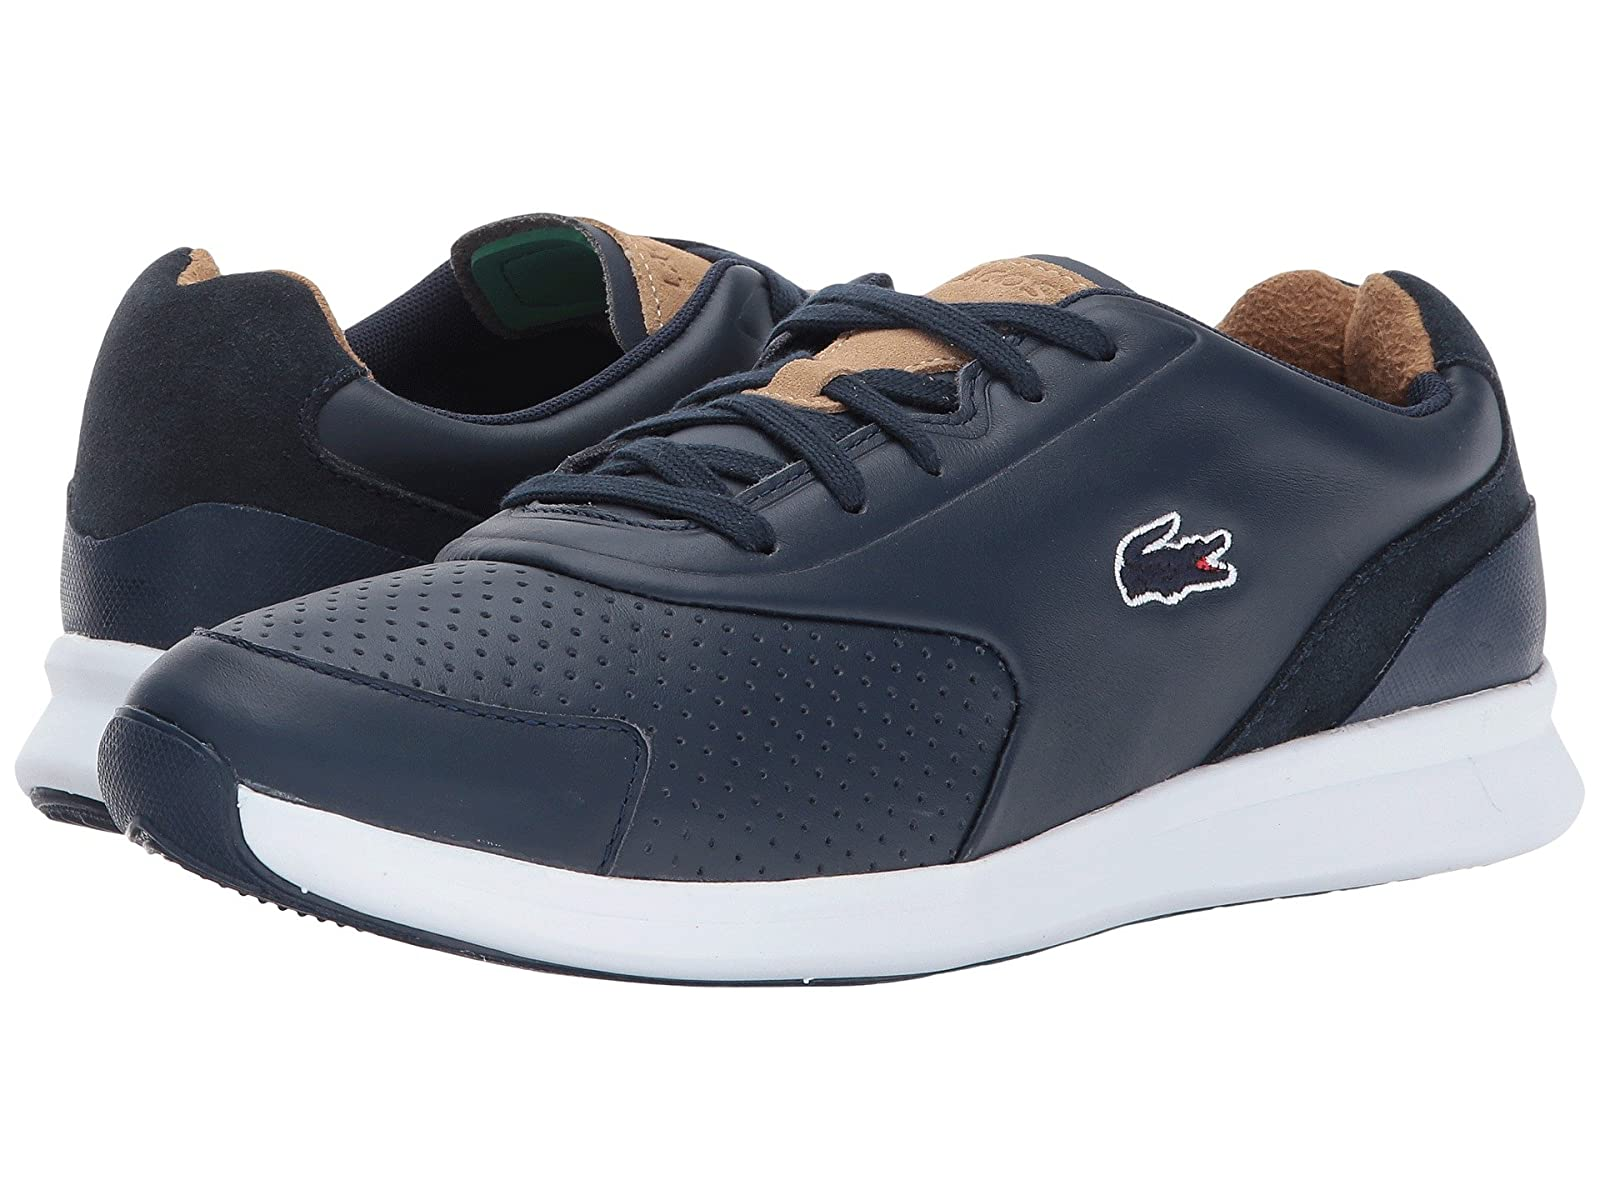 Lacoste LTR.01 317 1Cheap and distinctive eye-catching shoes